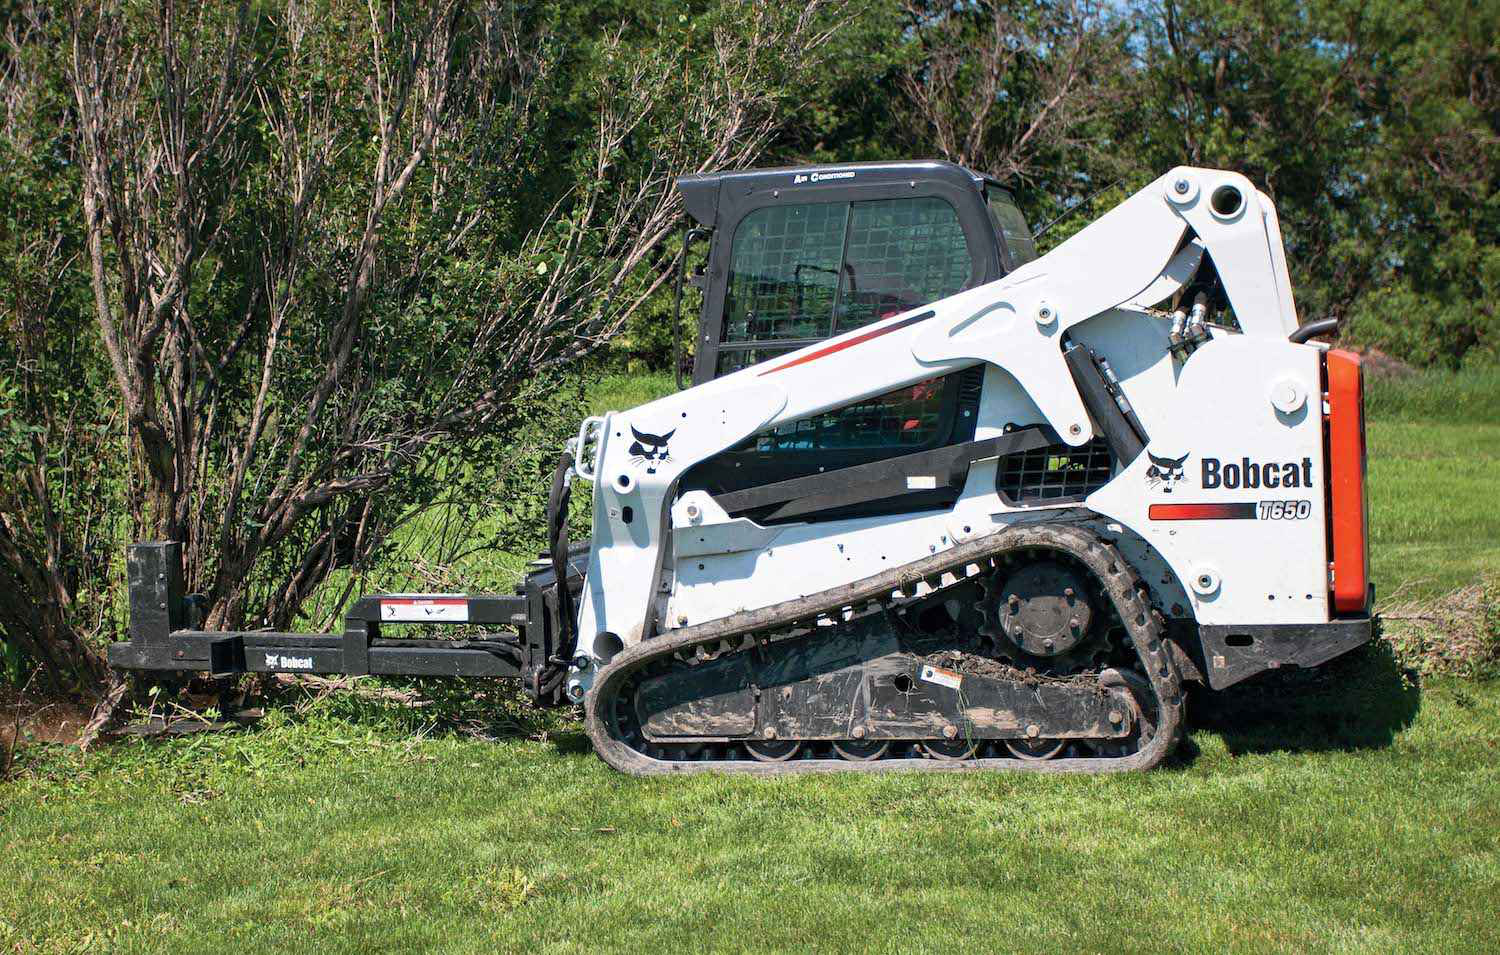 Bobcat launches 600 frame-size loaders: Tier 4 performance